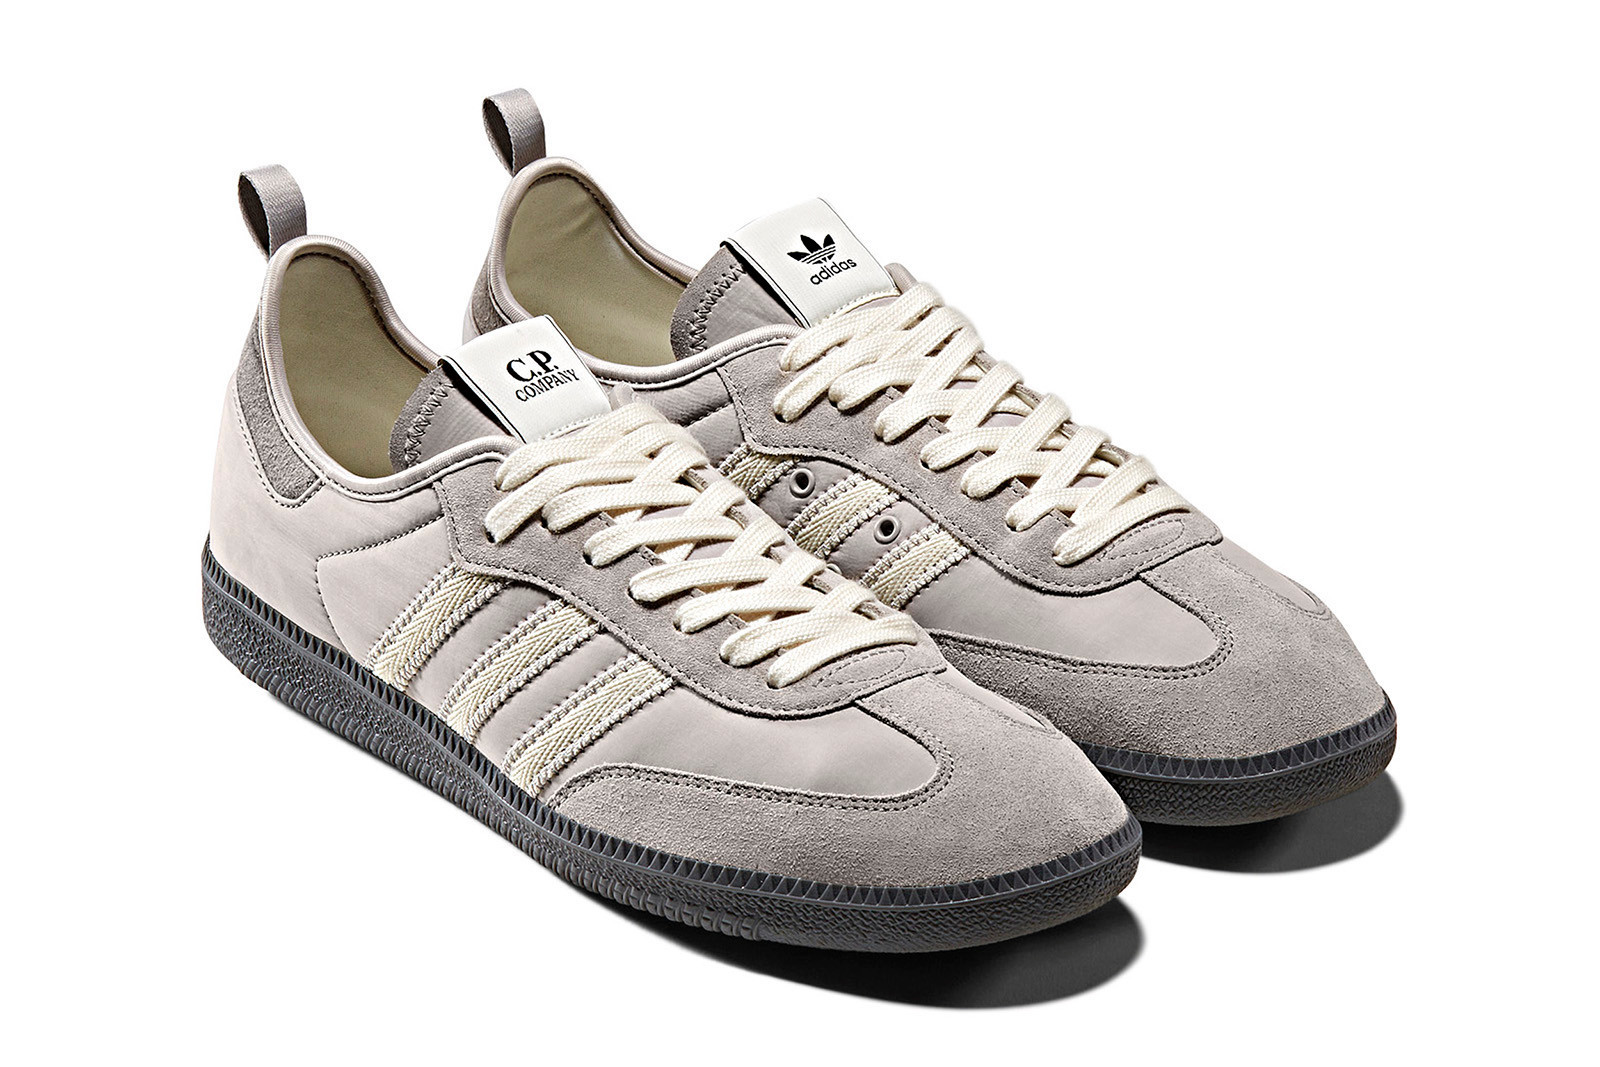 newest d95af 5165e Coming Soon: adidas Originals by C.P. Company Fall/Winter ...